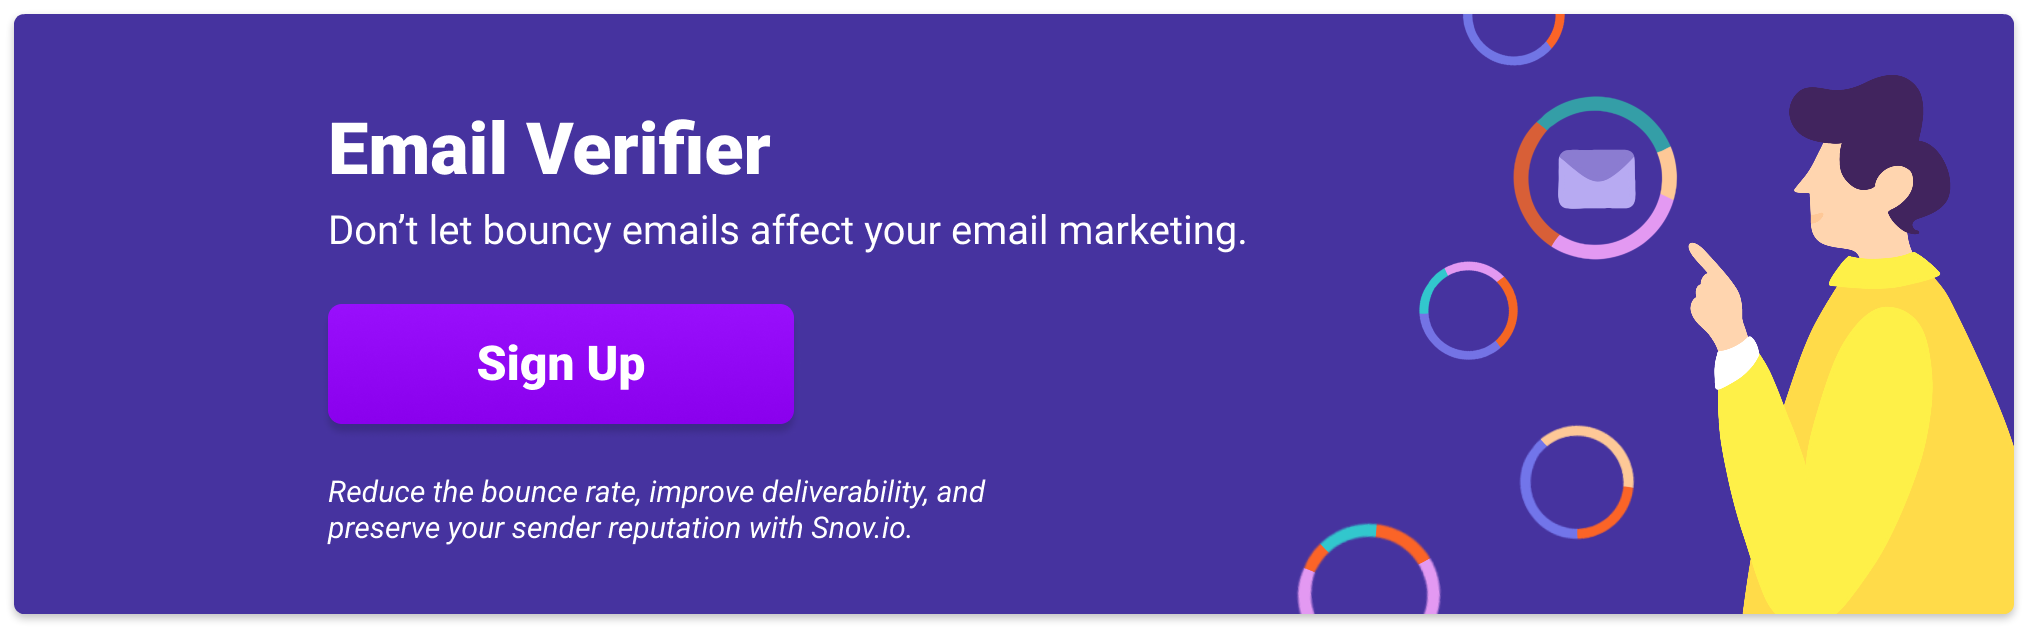 Email verifier tool free